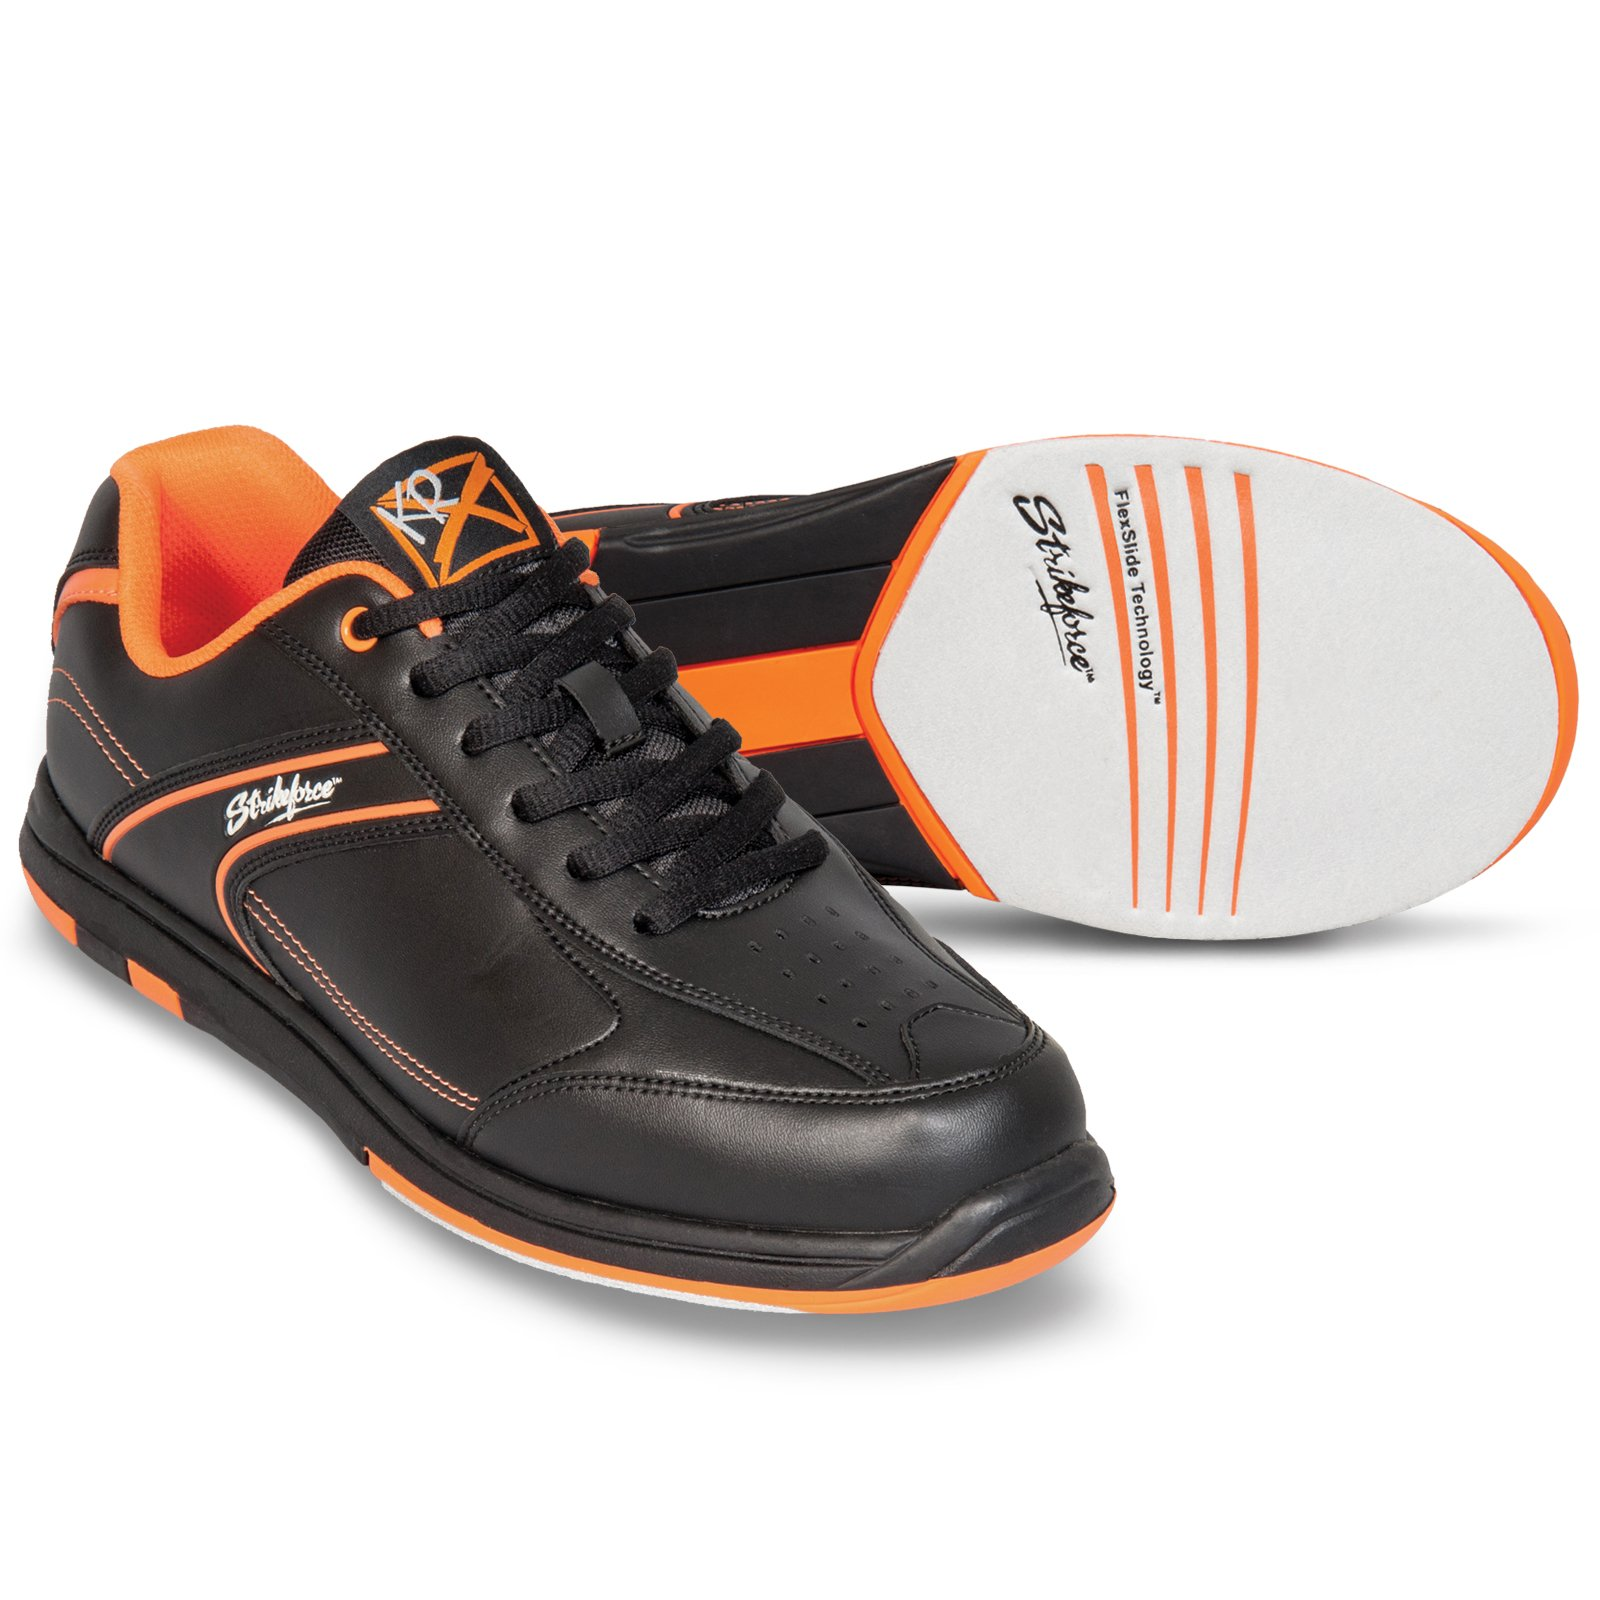 Strikeforce Flyer Black/Oragne Bowling Shoes Men's Size 10 by KR Strikeforce (Image #1)